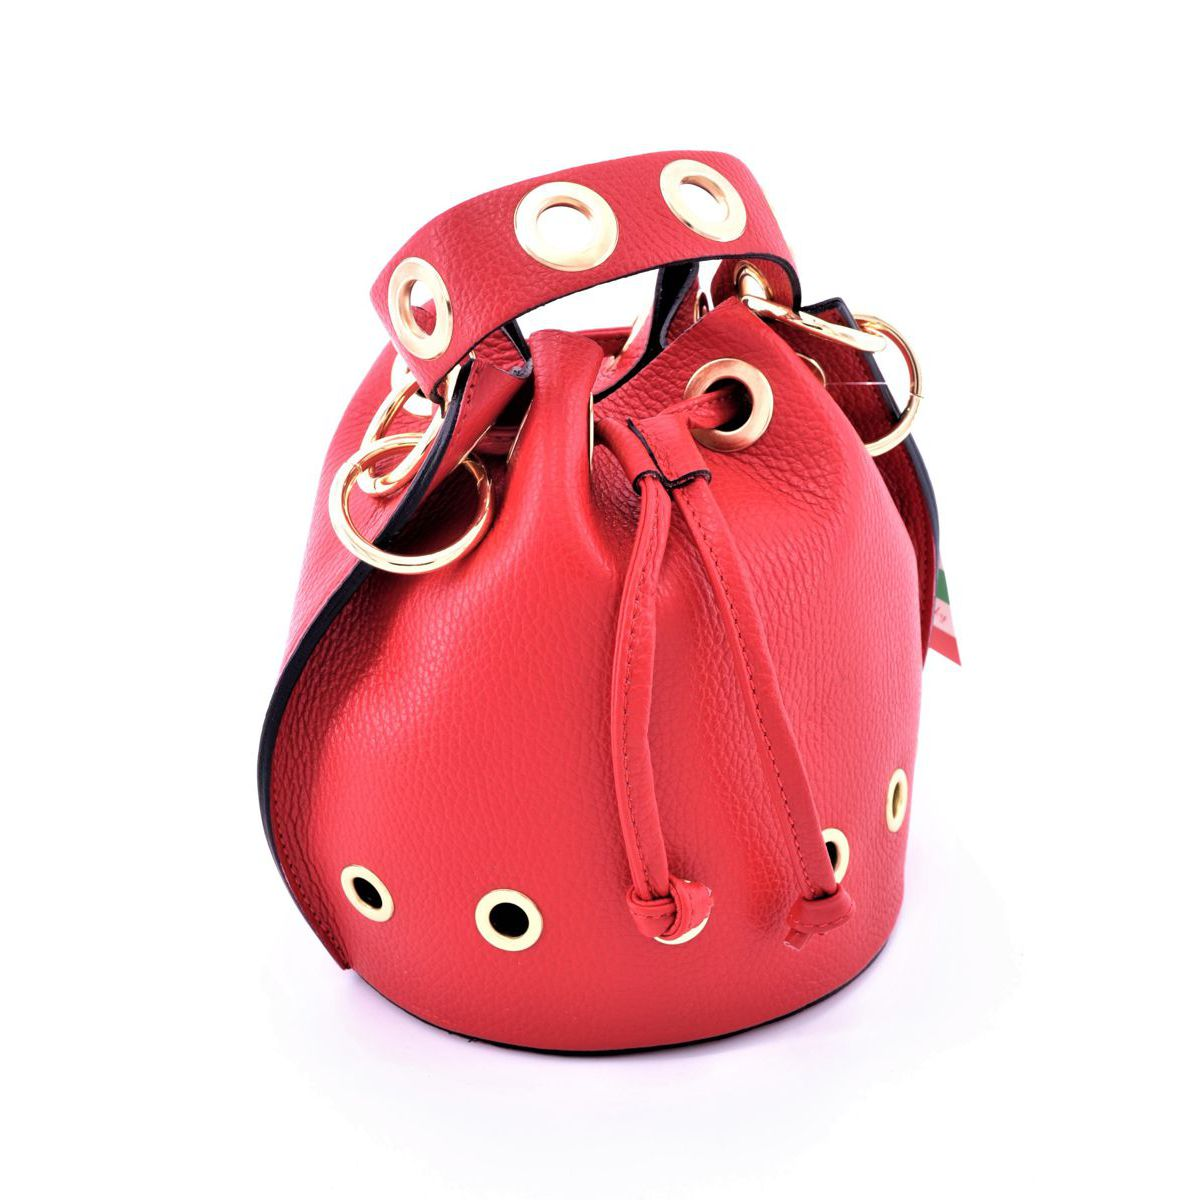 Mini leather bucket with shoulder strap Red BRASS Workshop